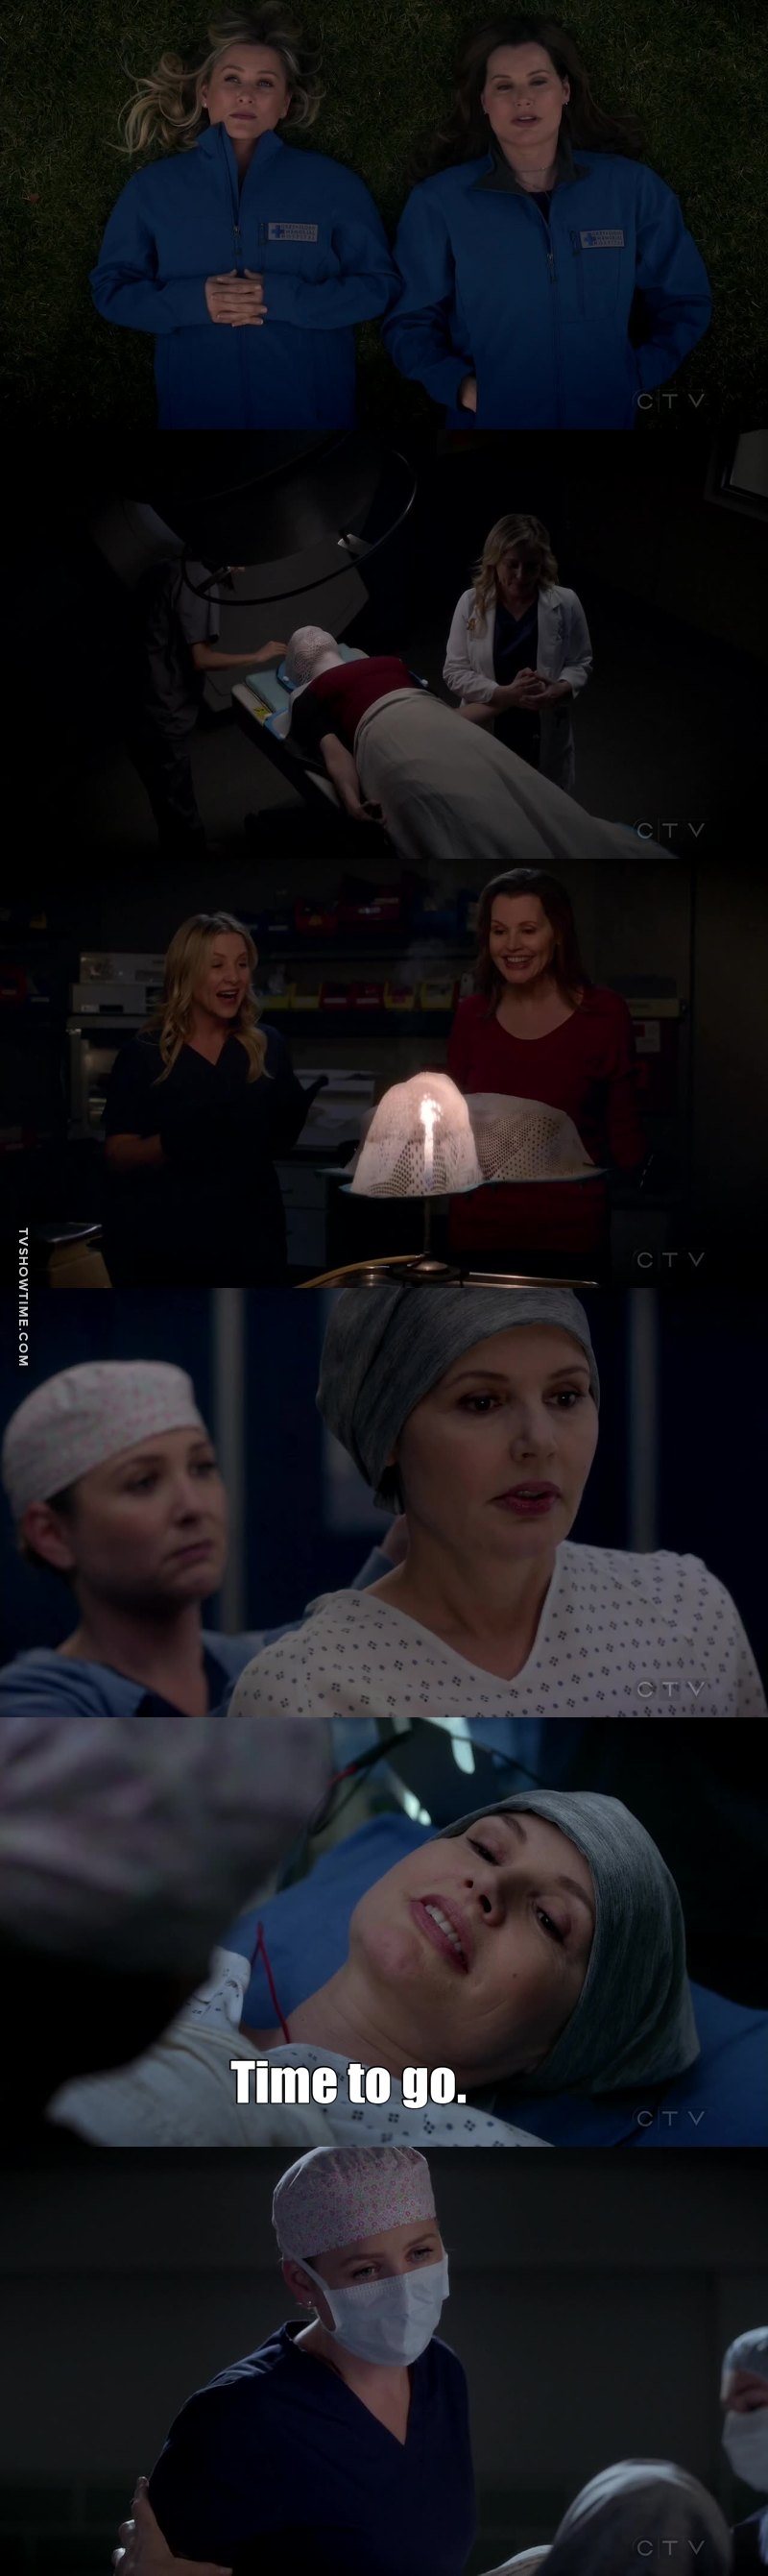 Amazing episode 😍👏🏼. Loved Nicole and Arizona's friendship 💘 The final part was so emotional 😭😭